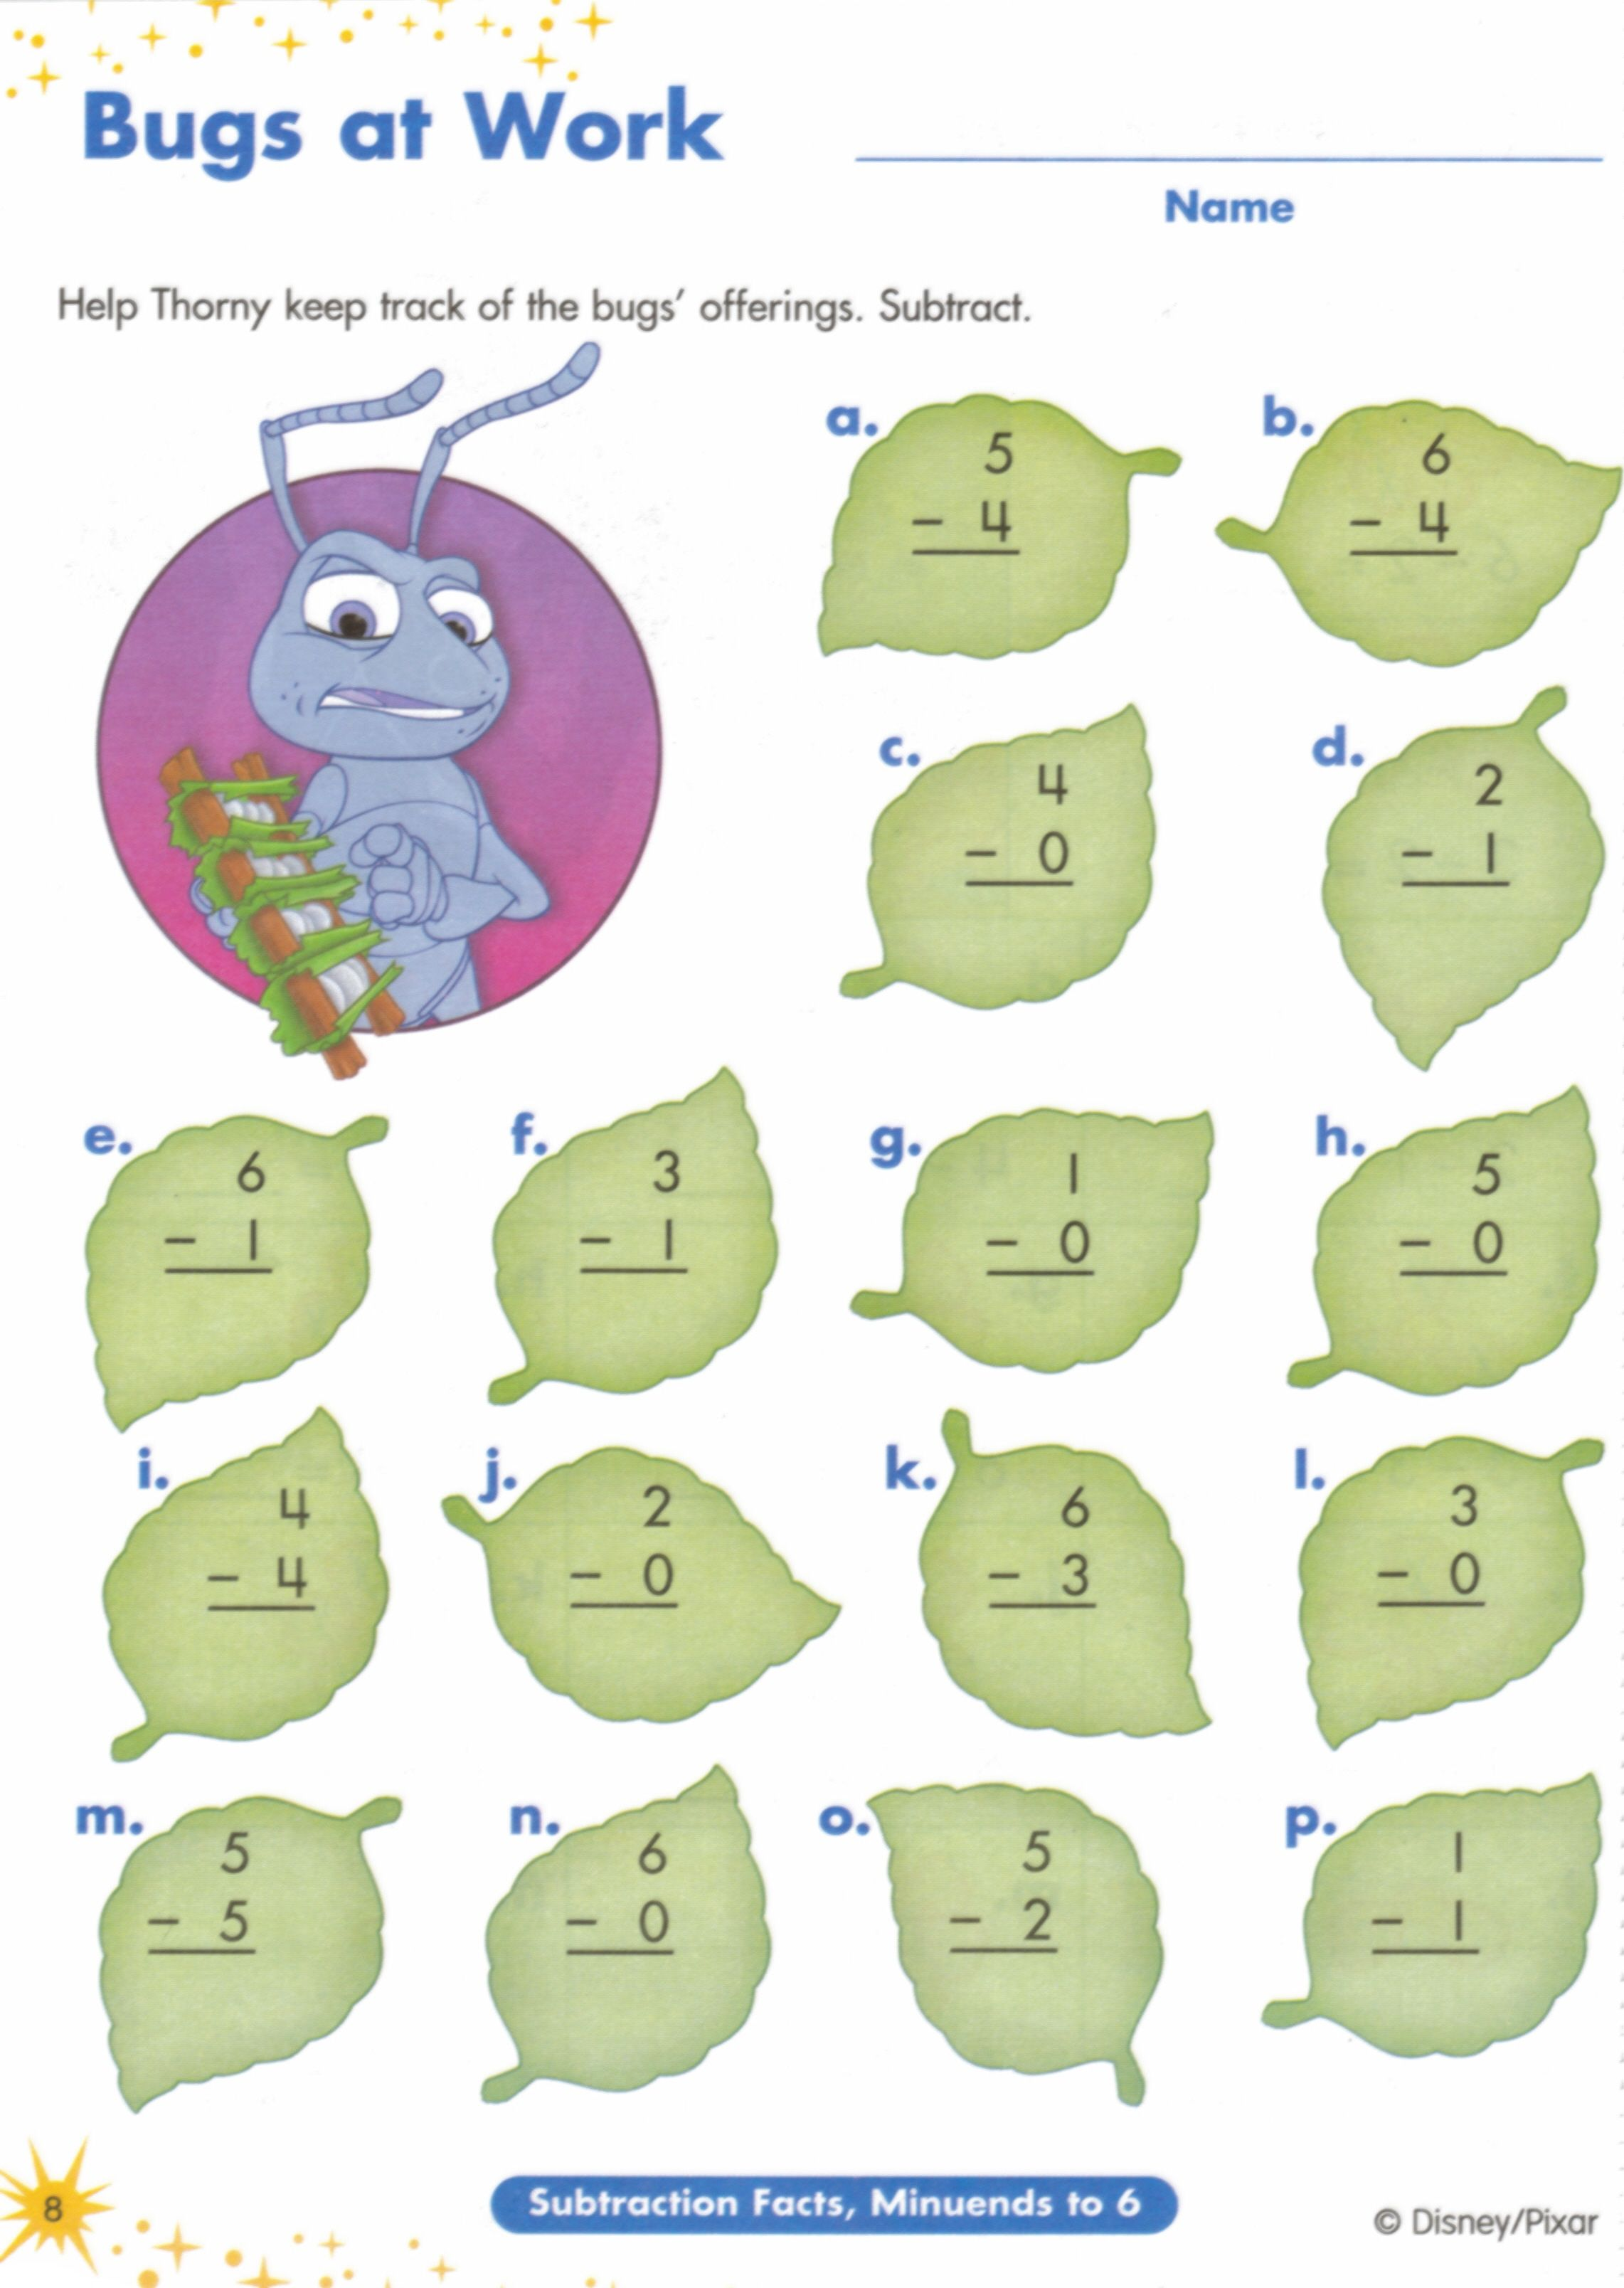 Proatmealus  Pretty  Images About Worksheets On Pinterest  Fun Facts For Kids  With Handsome  Images About Worksheets On Pinterest  Fun Facts For Kids Earth Day Worksheets And Jungles With Astonishing Letter E Worksheet Also Human Digestive System Worksheet In Addition The Scramble For Africa Worksheet Answers And Graphing Inequalities In Two Variables Worksheet As Well As Microscope Labeling Worksheet Additionally Hanukkah Worksheets From Pinterestcom With Proatmealus  Handsome  Images About Worksheets On Pinterest  Fun Facts For Kids  With Astonishing  Images About Worksheets On Pinterest  Fun Facts For Kids Earth Day Worksheets And Jungles And Pretty Letter E Worksheet Also Human Digestive System Worksheet In Addition The Scramble For Africa Worksheet Answers From Pinterestcom